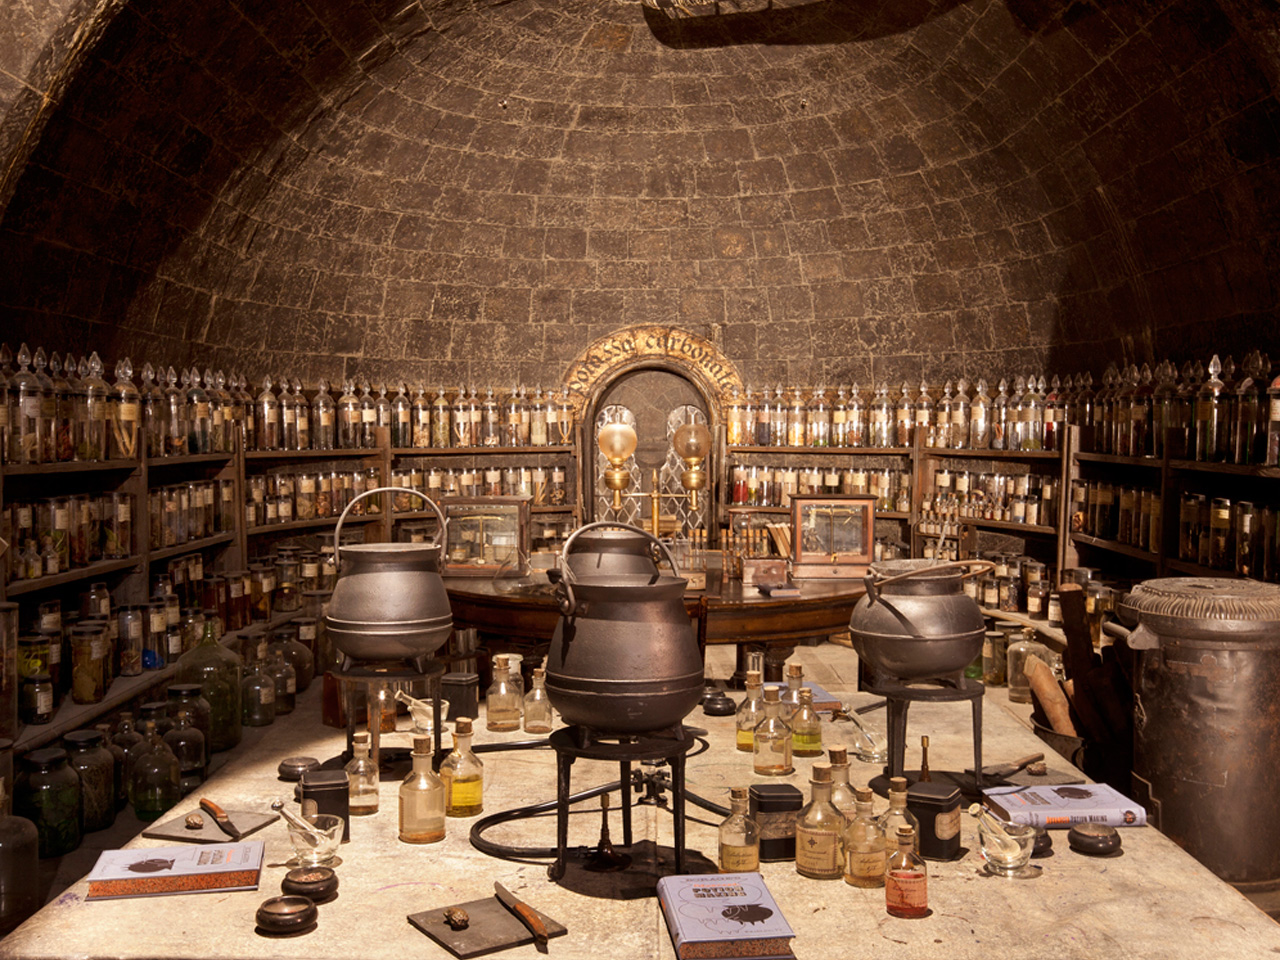 Behind the Scenes: The magical world of Harry Potter